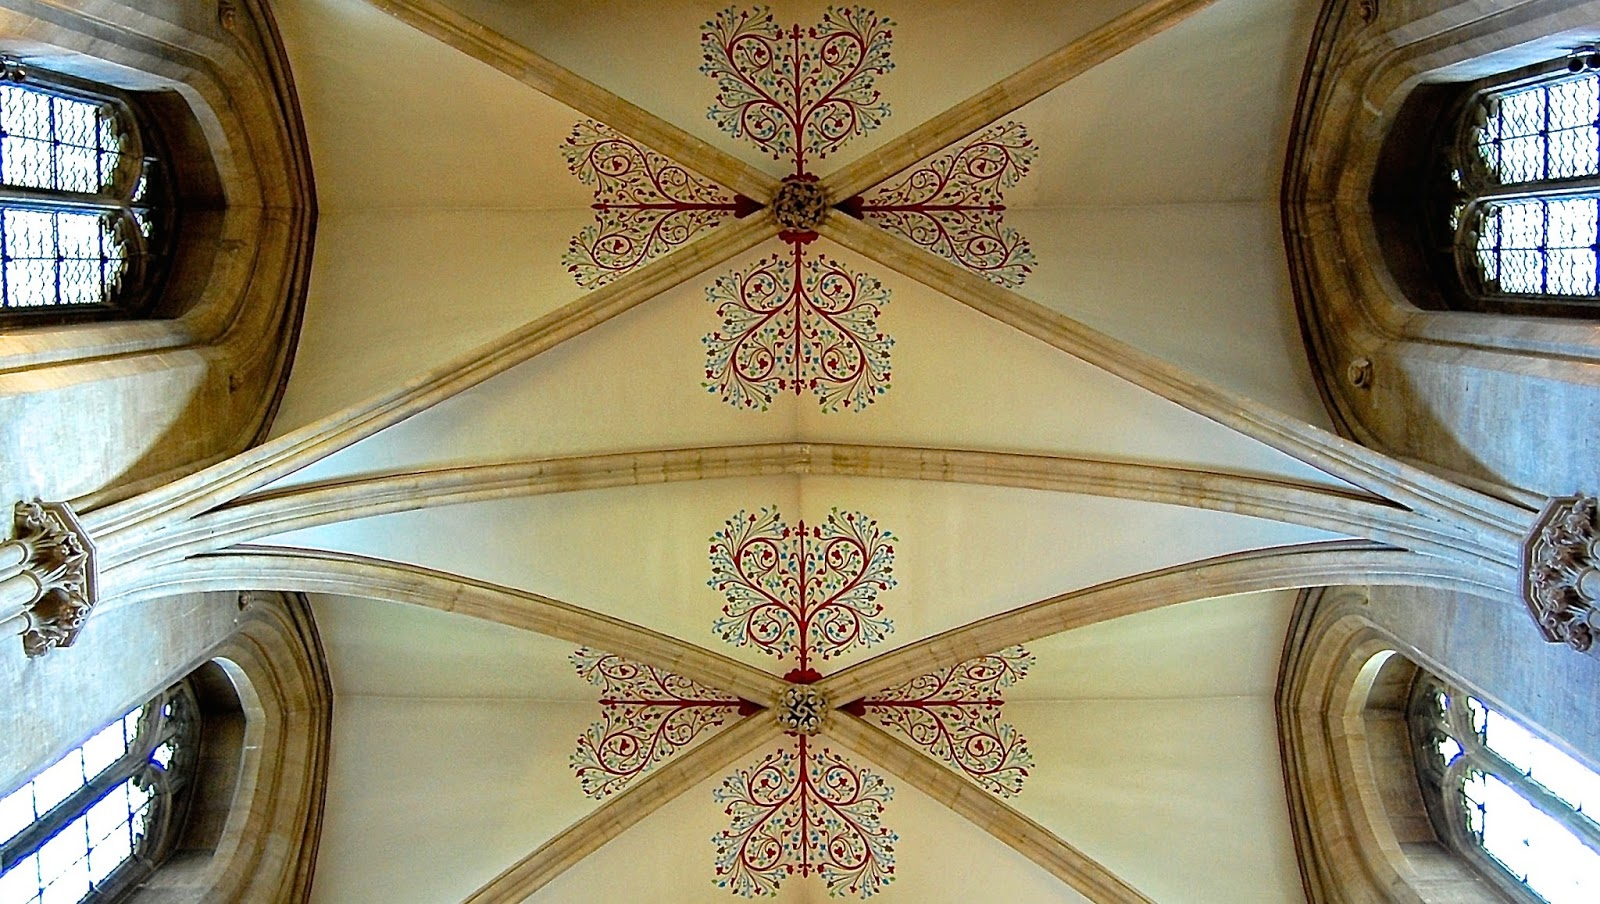 Flower design on ceiling of Wells Cathedral